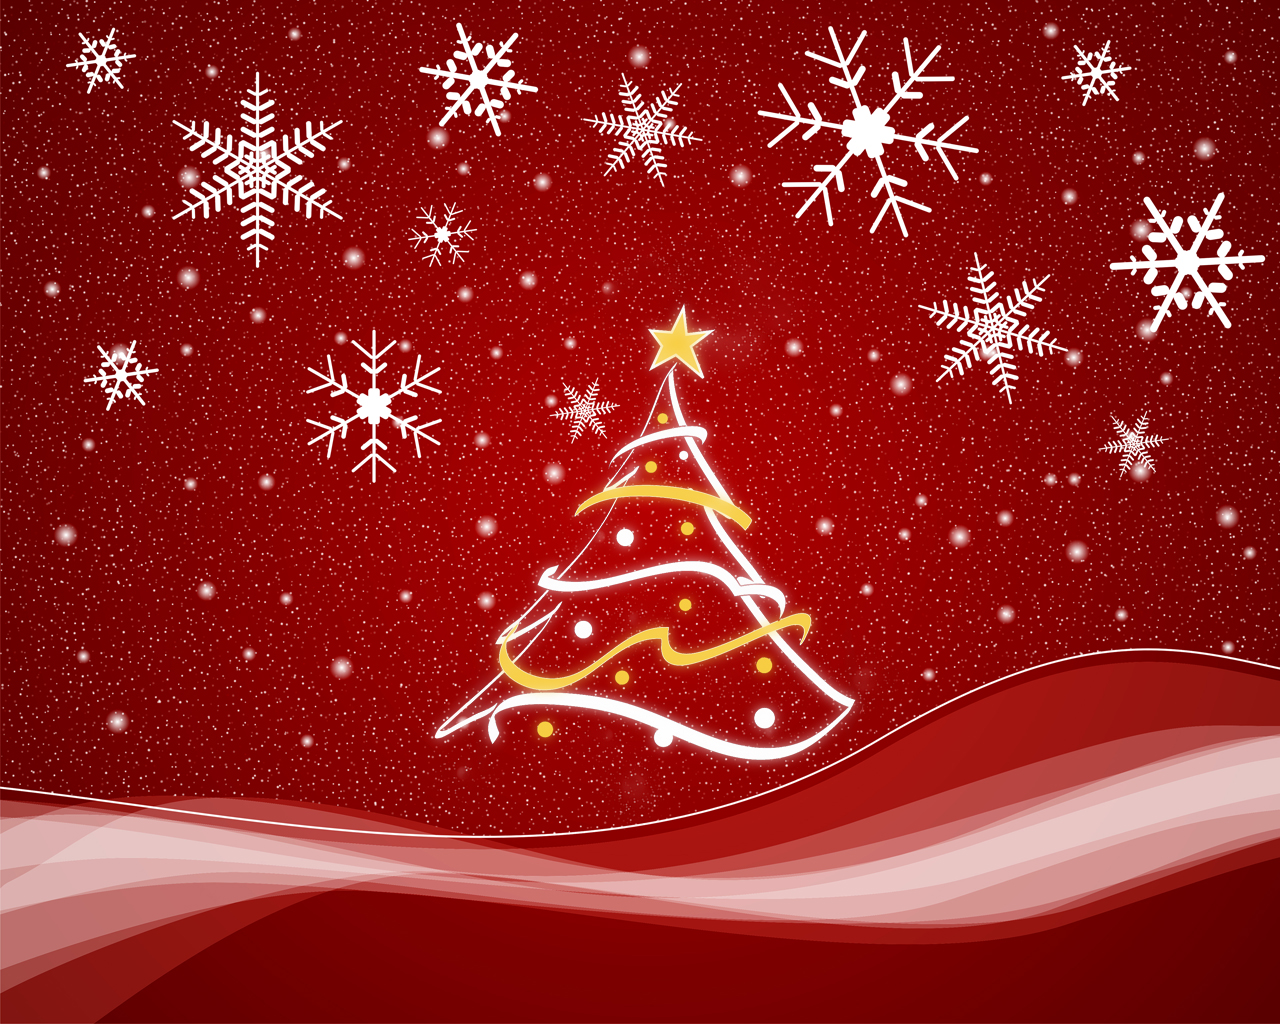 textures, New Year, Christmas texture, Christmas and New Year tree texture background,